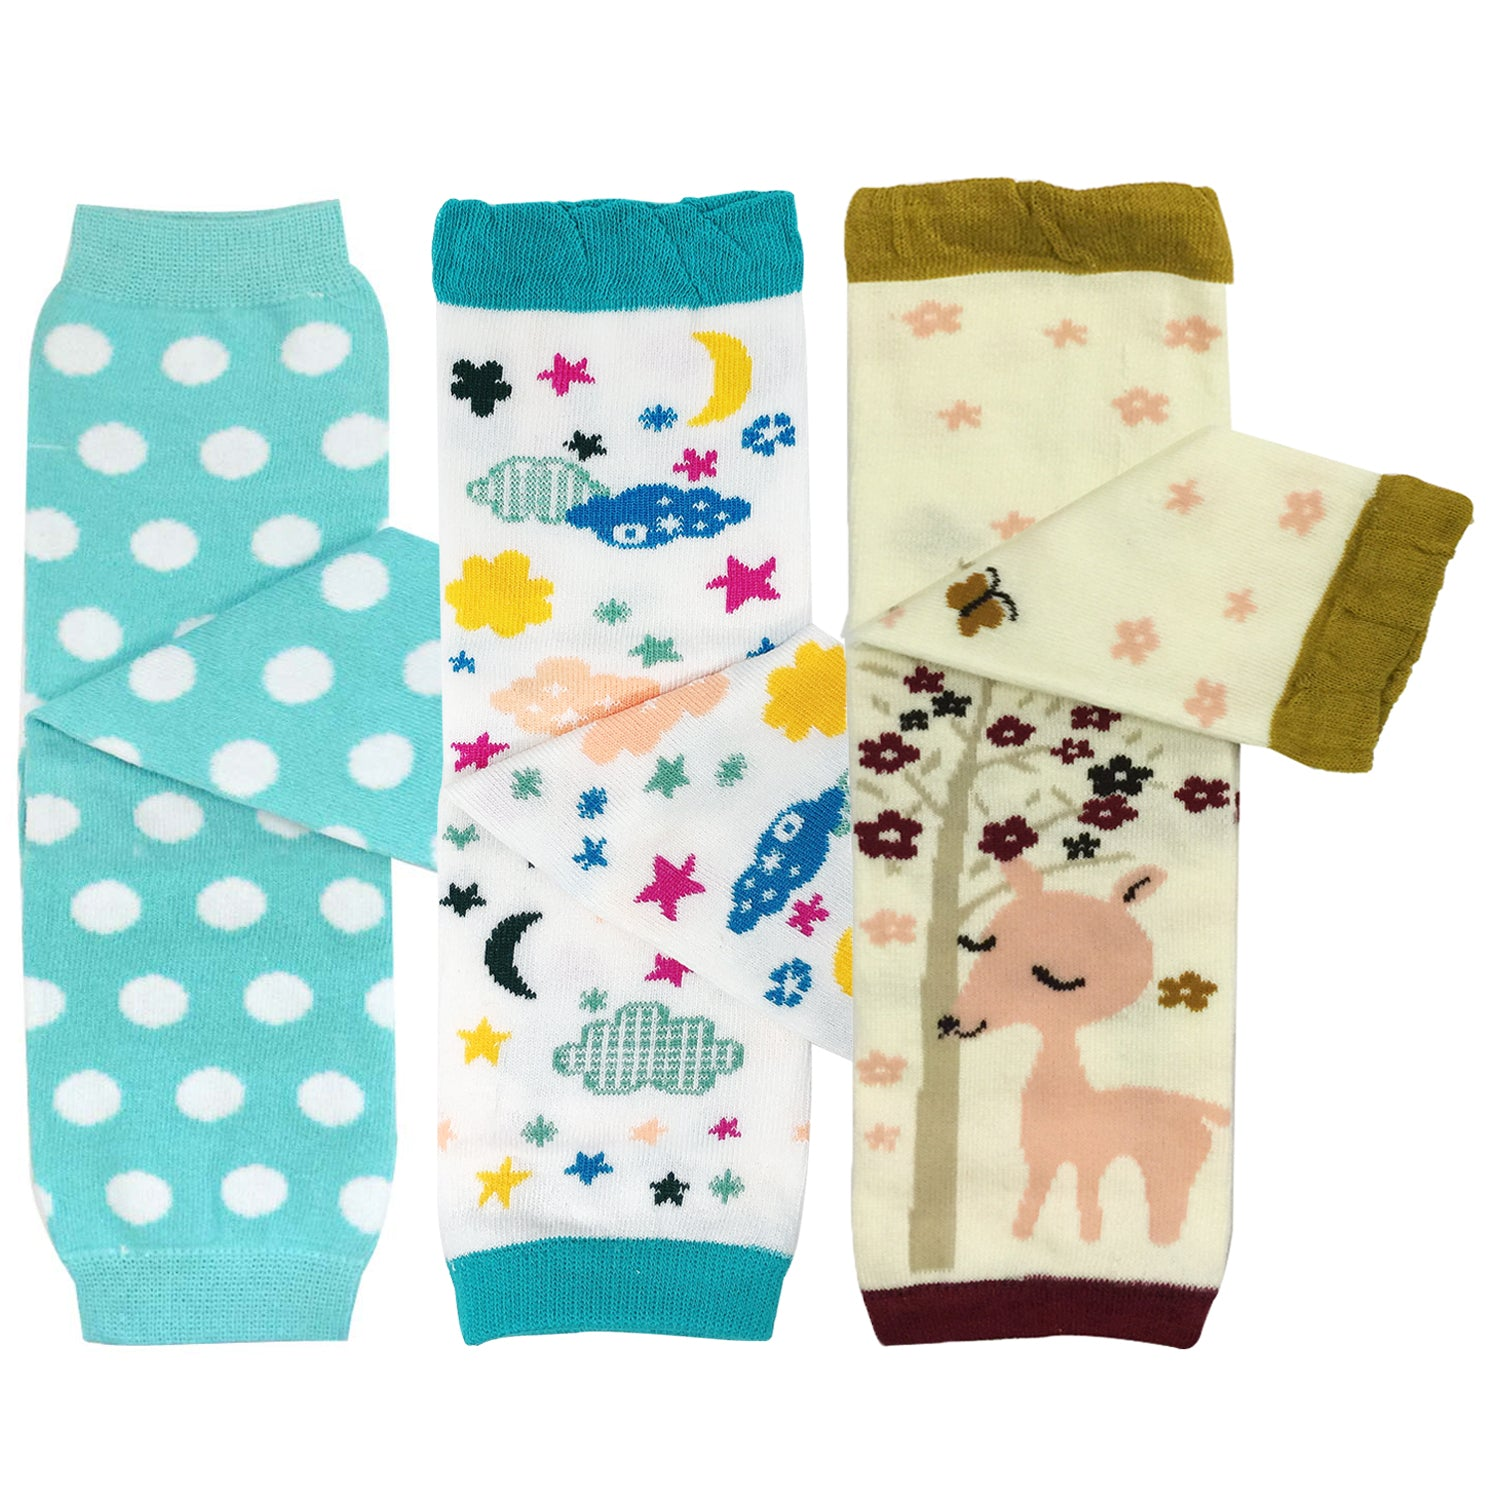 Wrapables Playful Patterns Baby & Toddler Leg Warmers (Set of 3)